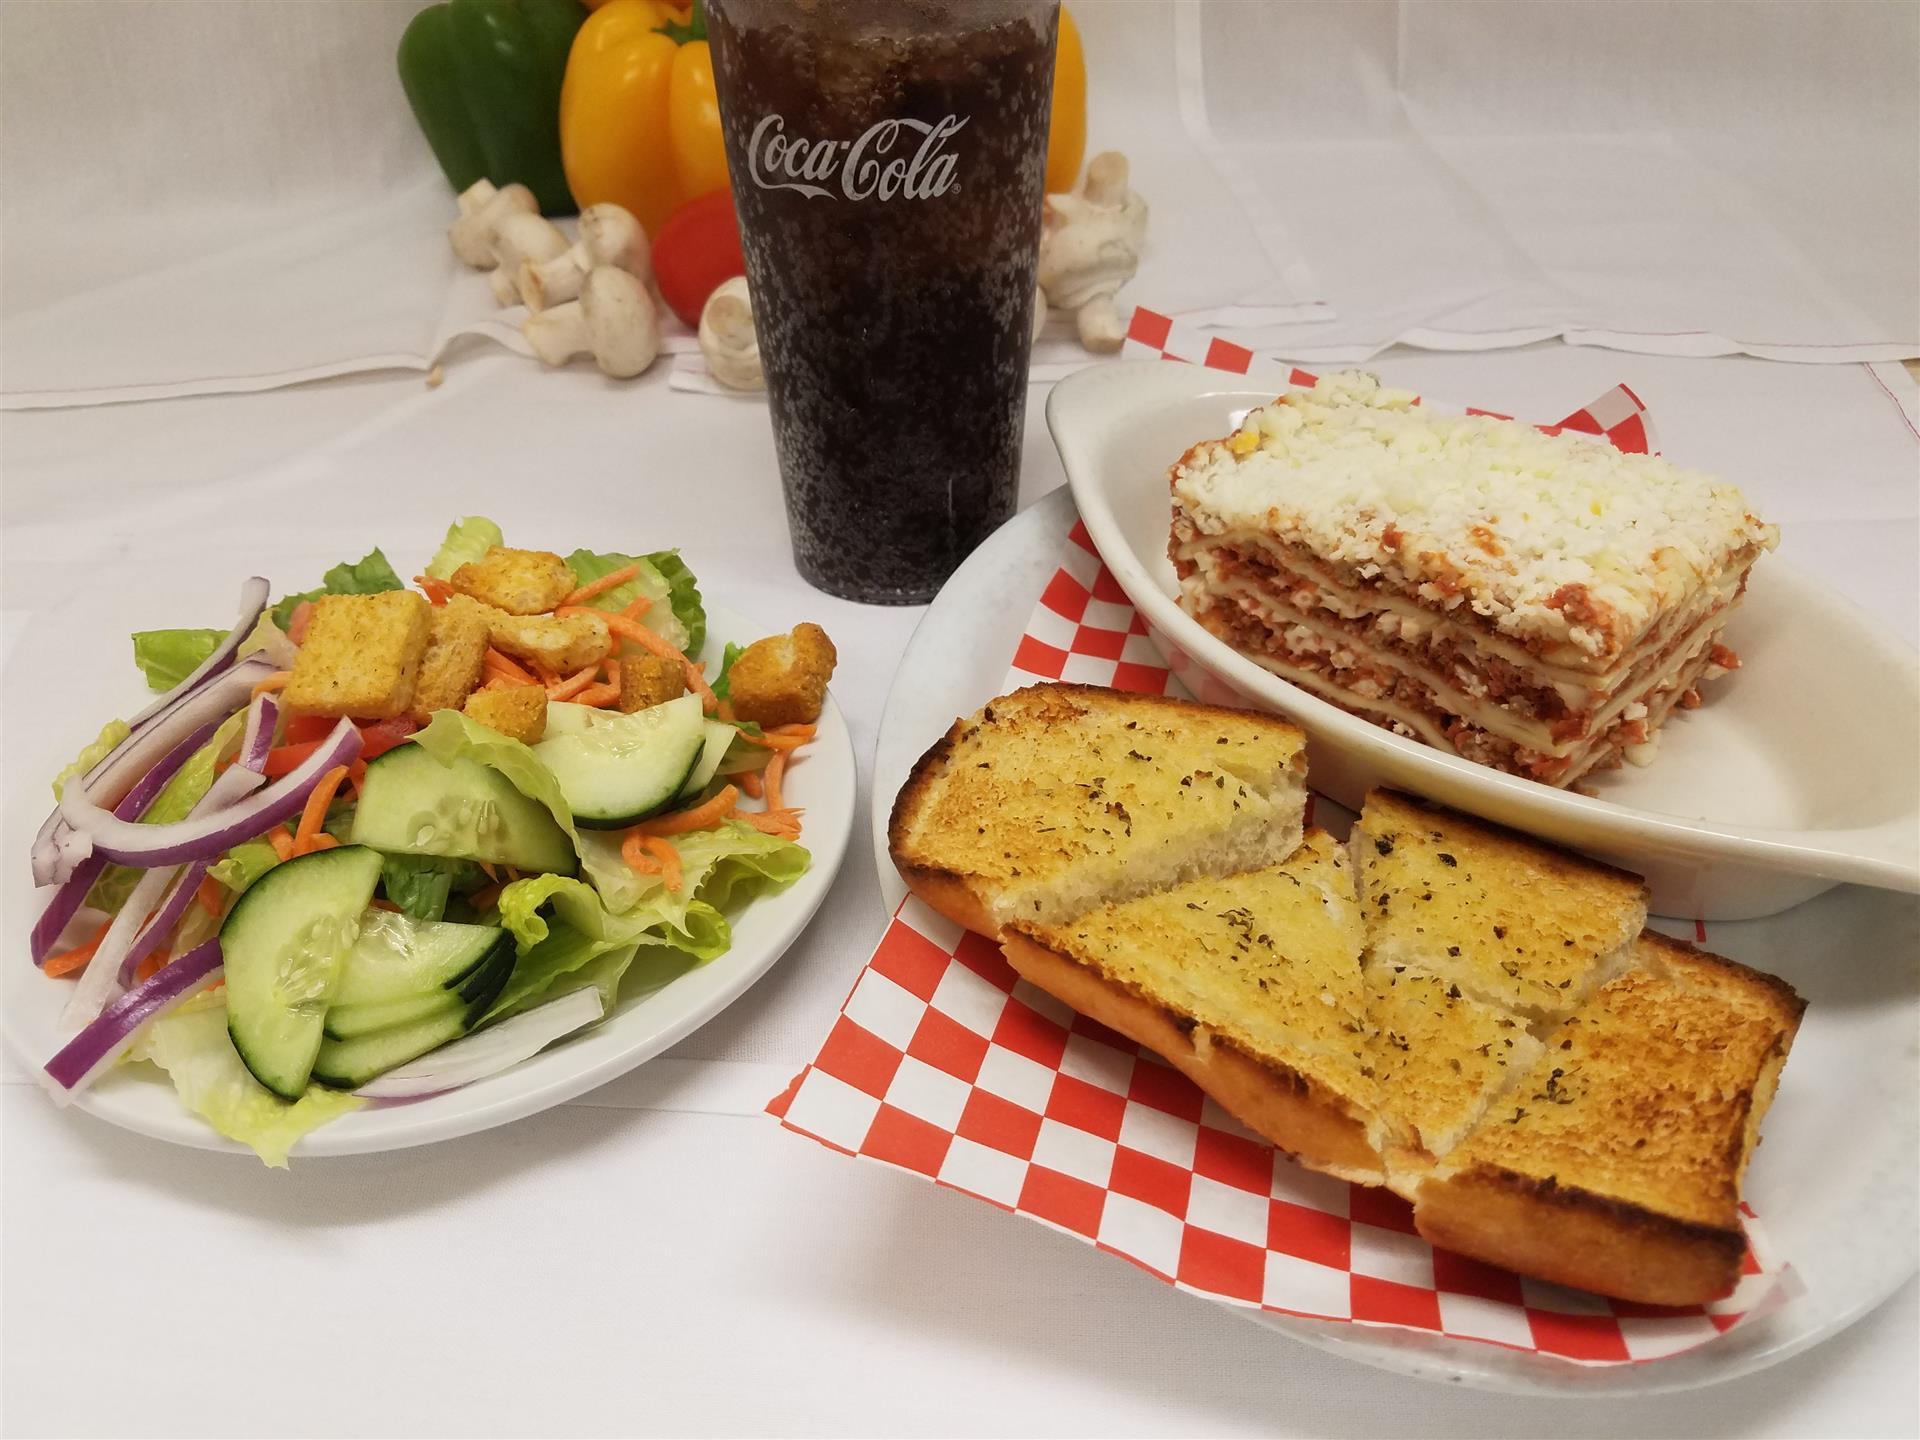 lasagna with garlic bread and house salad with a soda